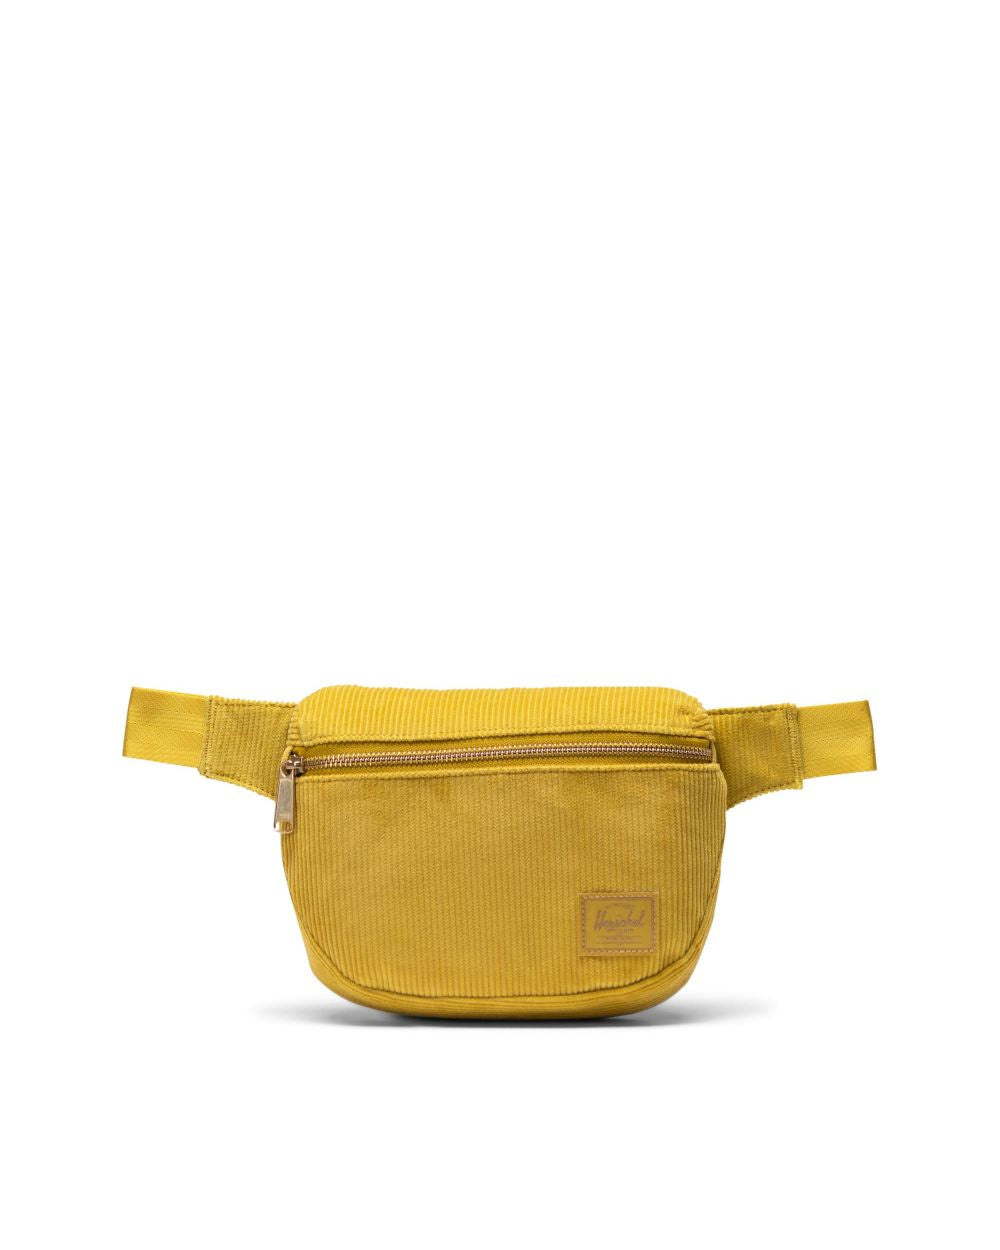 FIFTEEN HIP PACK CORDUROY - GOLDEN PALM